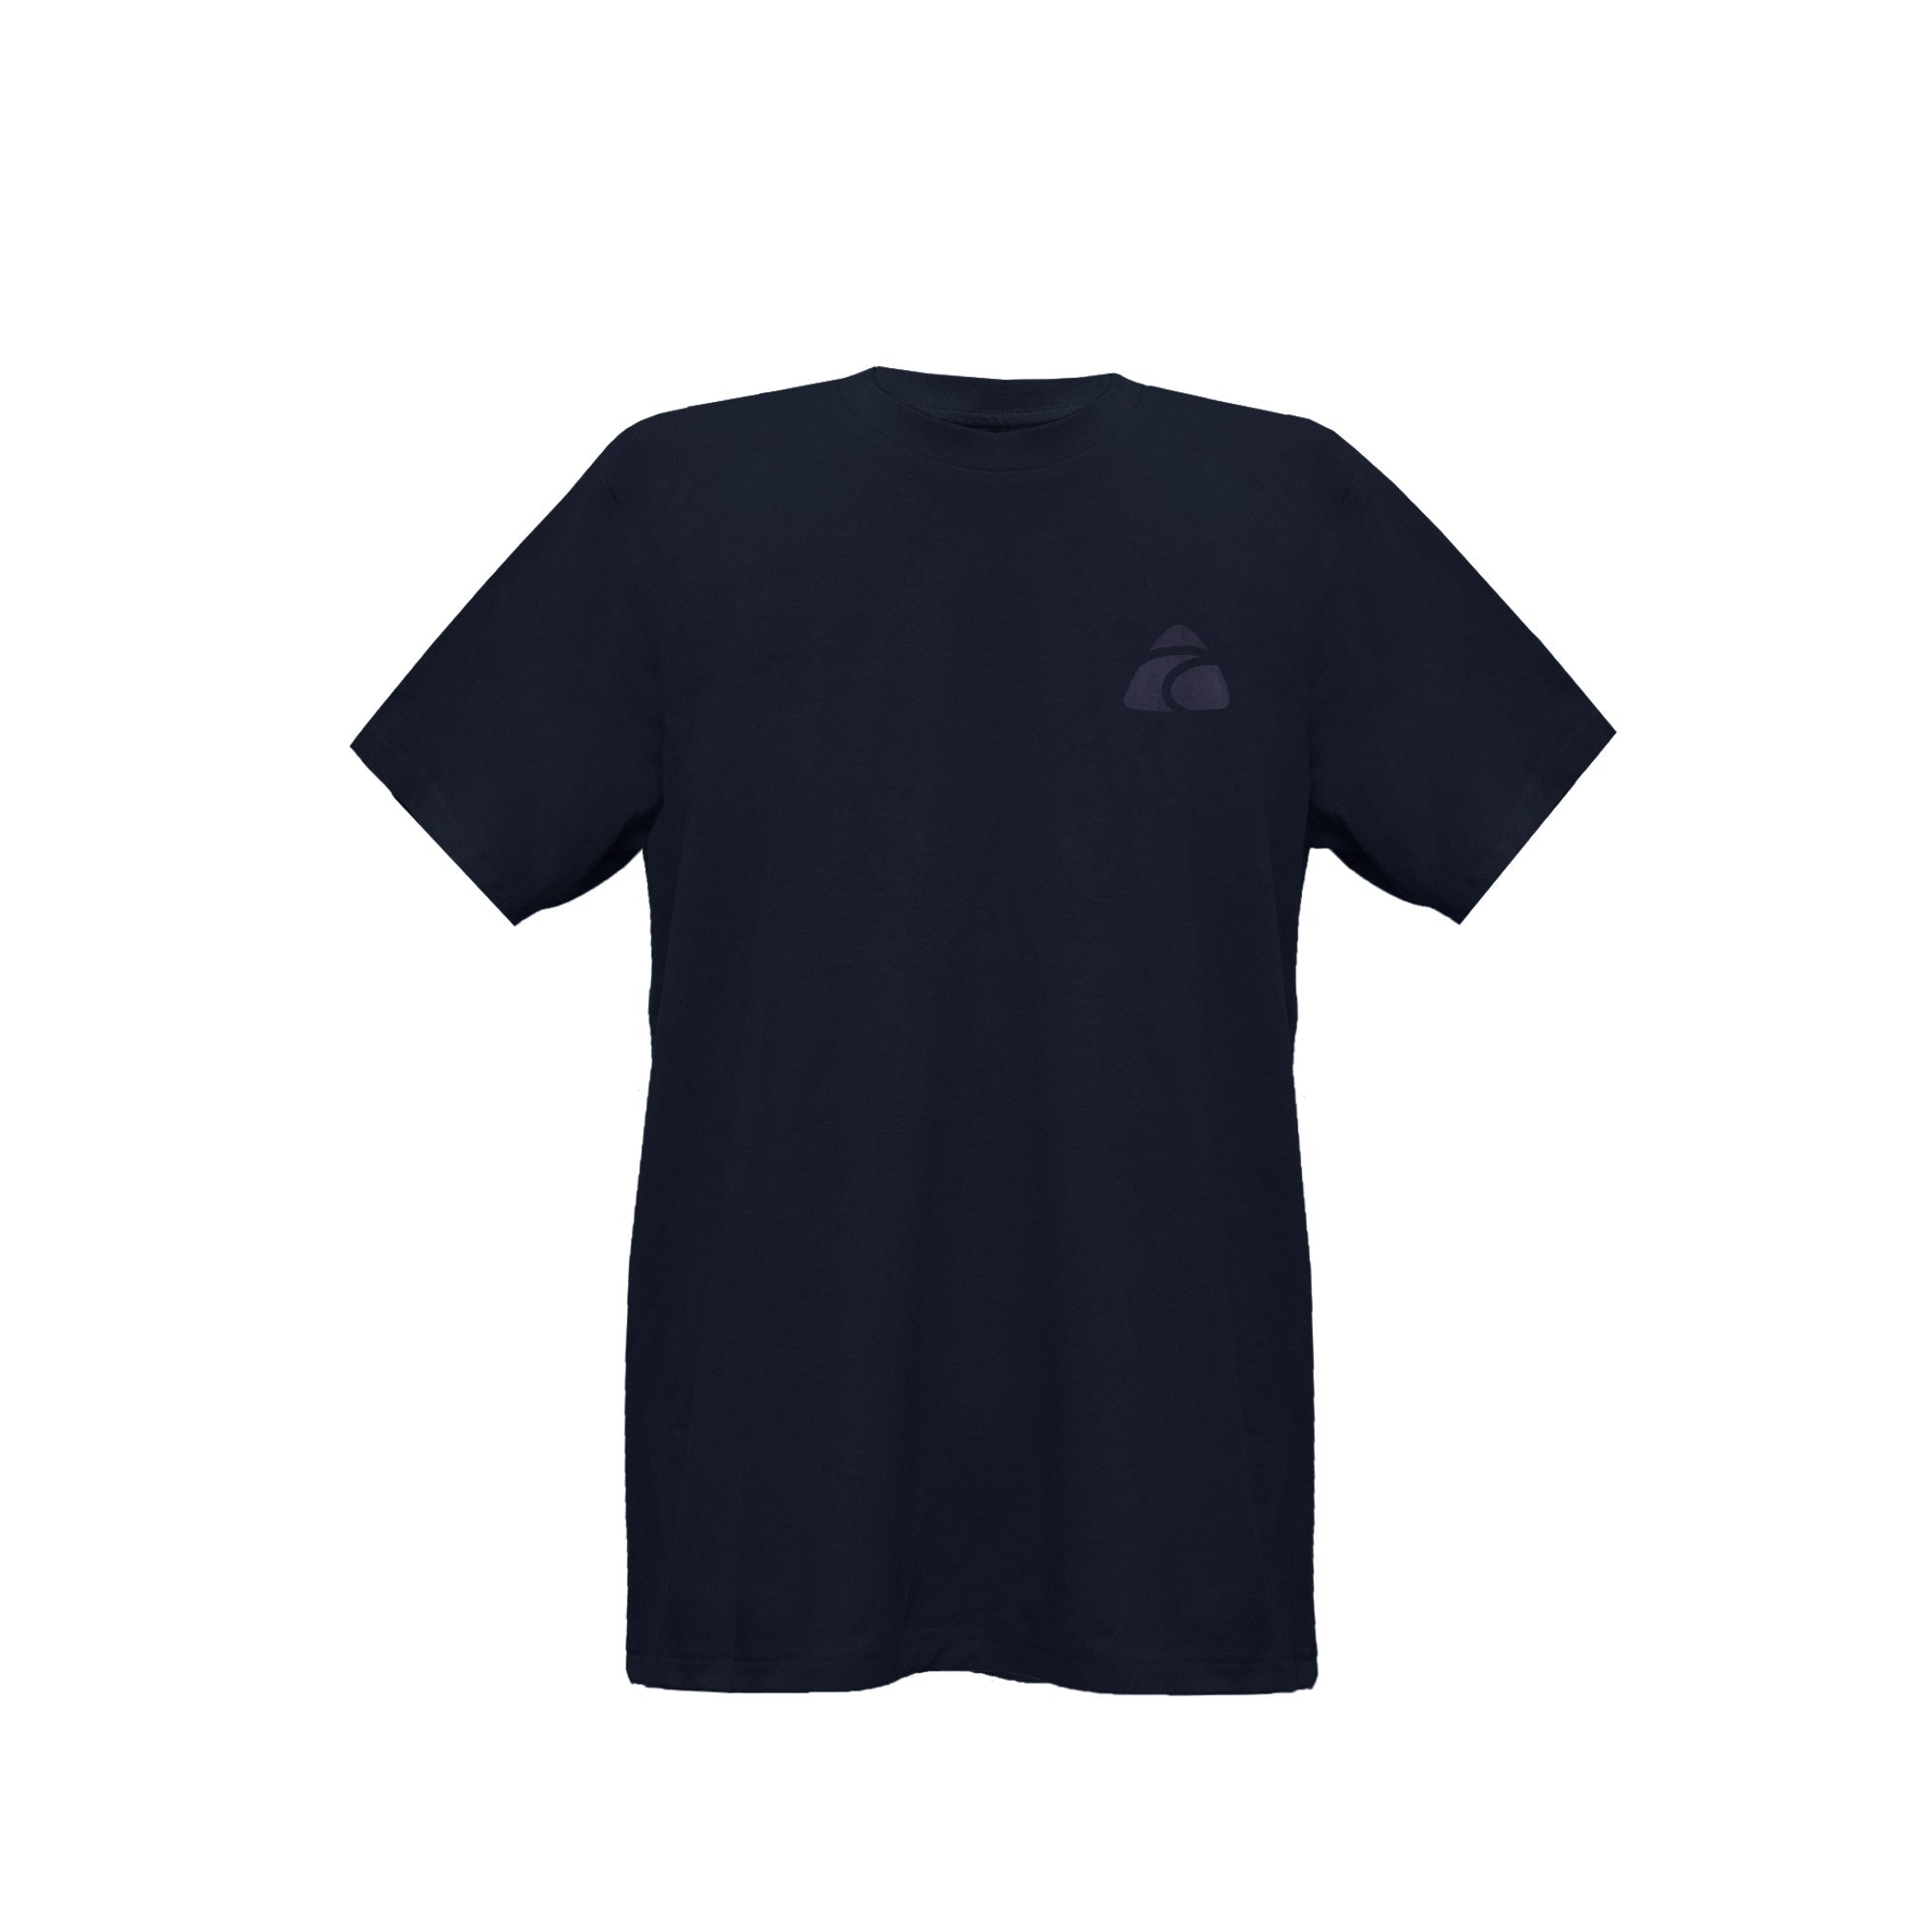 Riders Essentials Blackline T-shirt